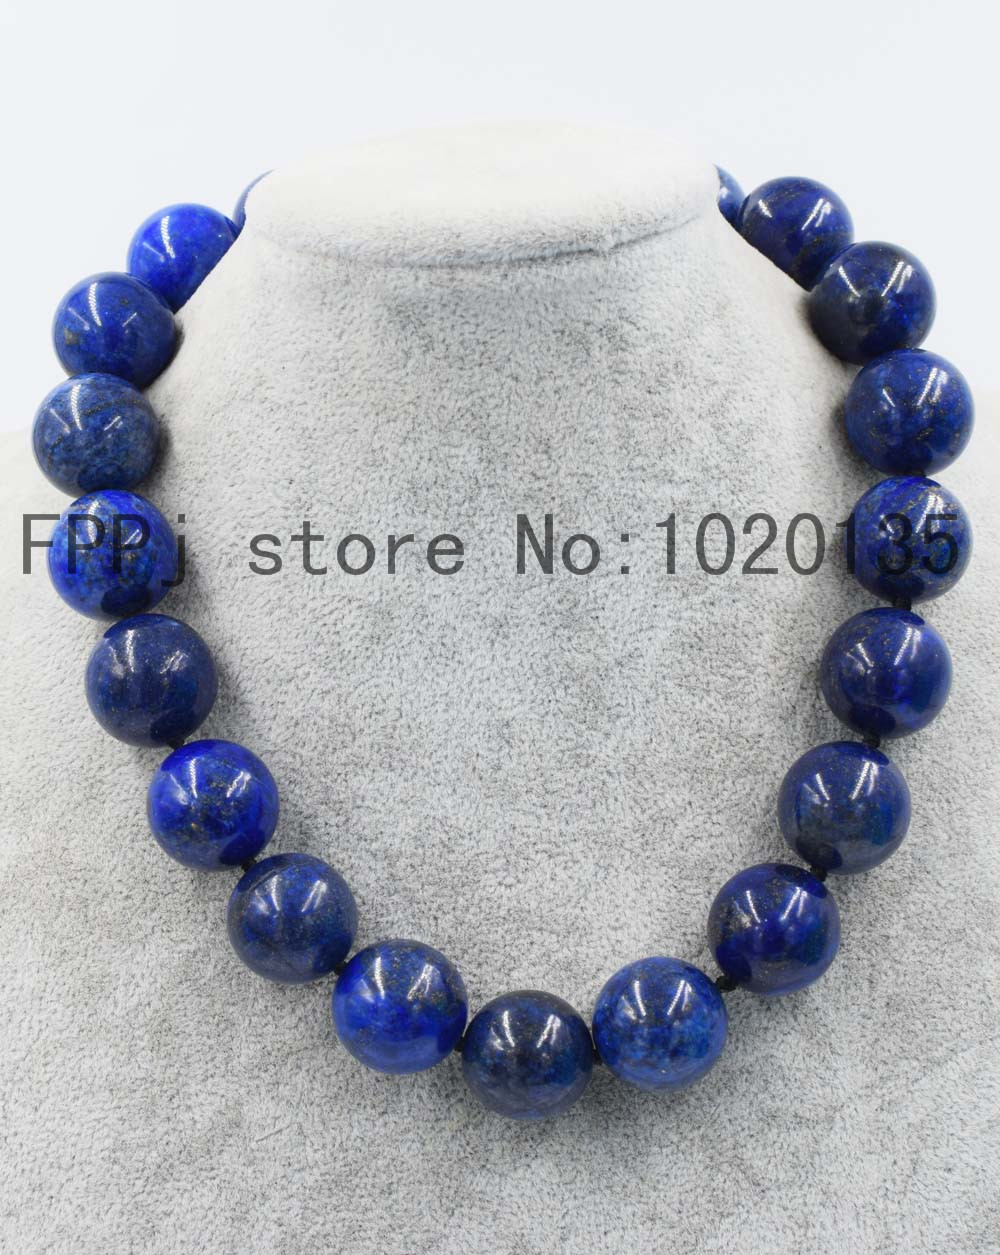 wow! lapis lazuli round blue 10- 20mm necklace  18inch wholesale beads  FPPJ nature